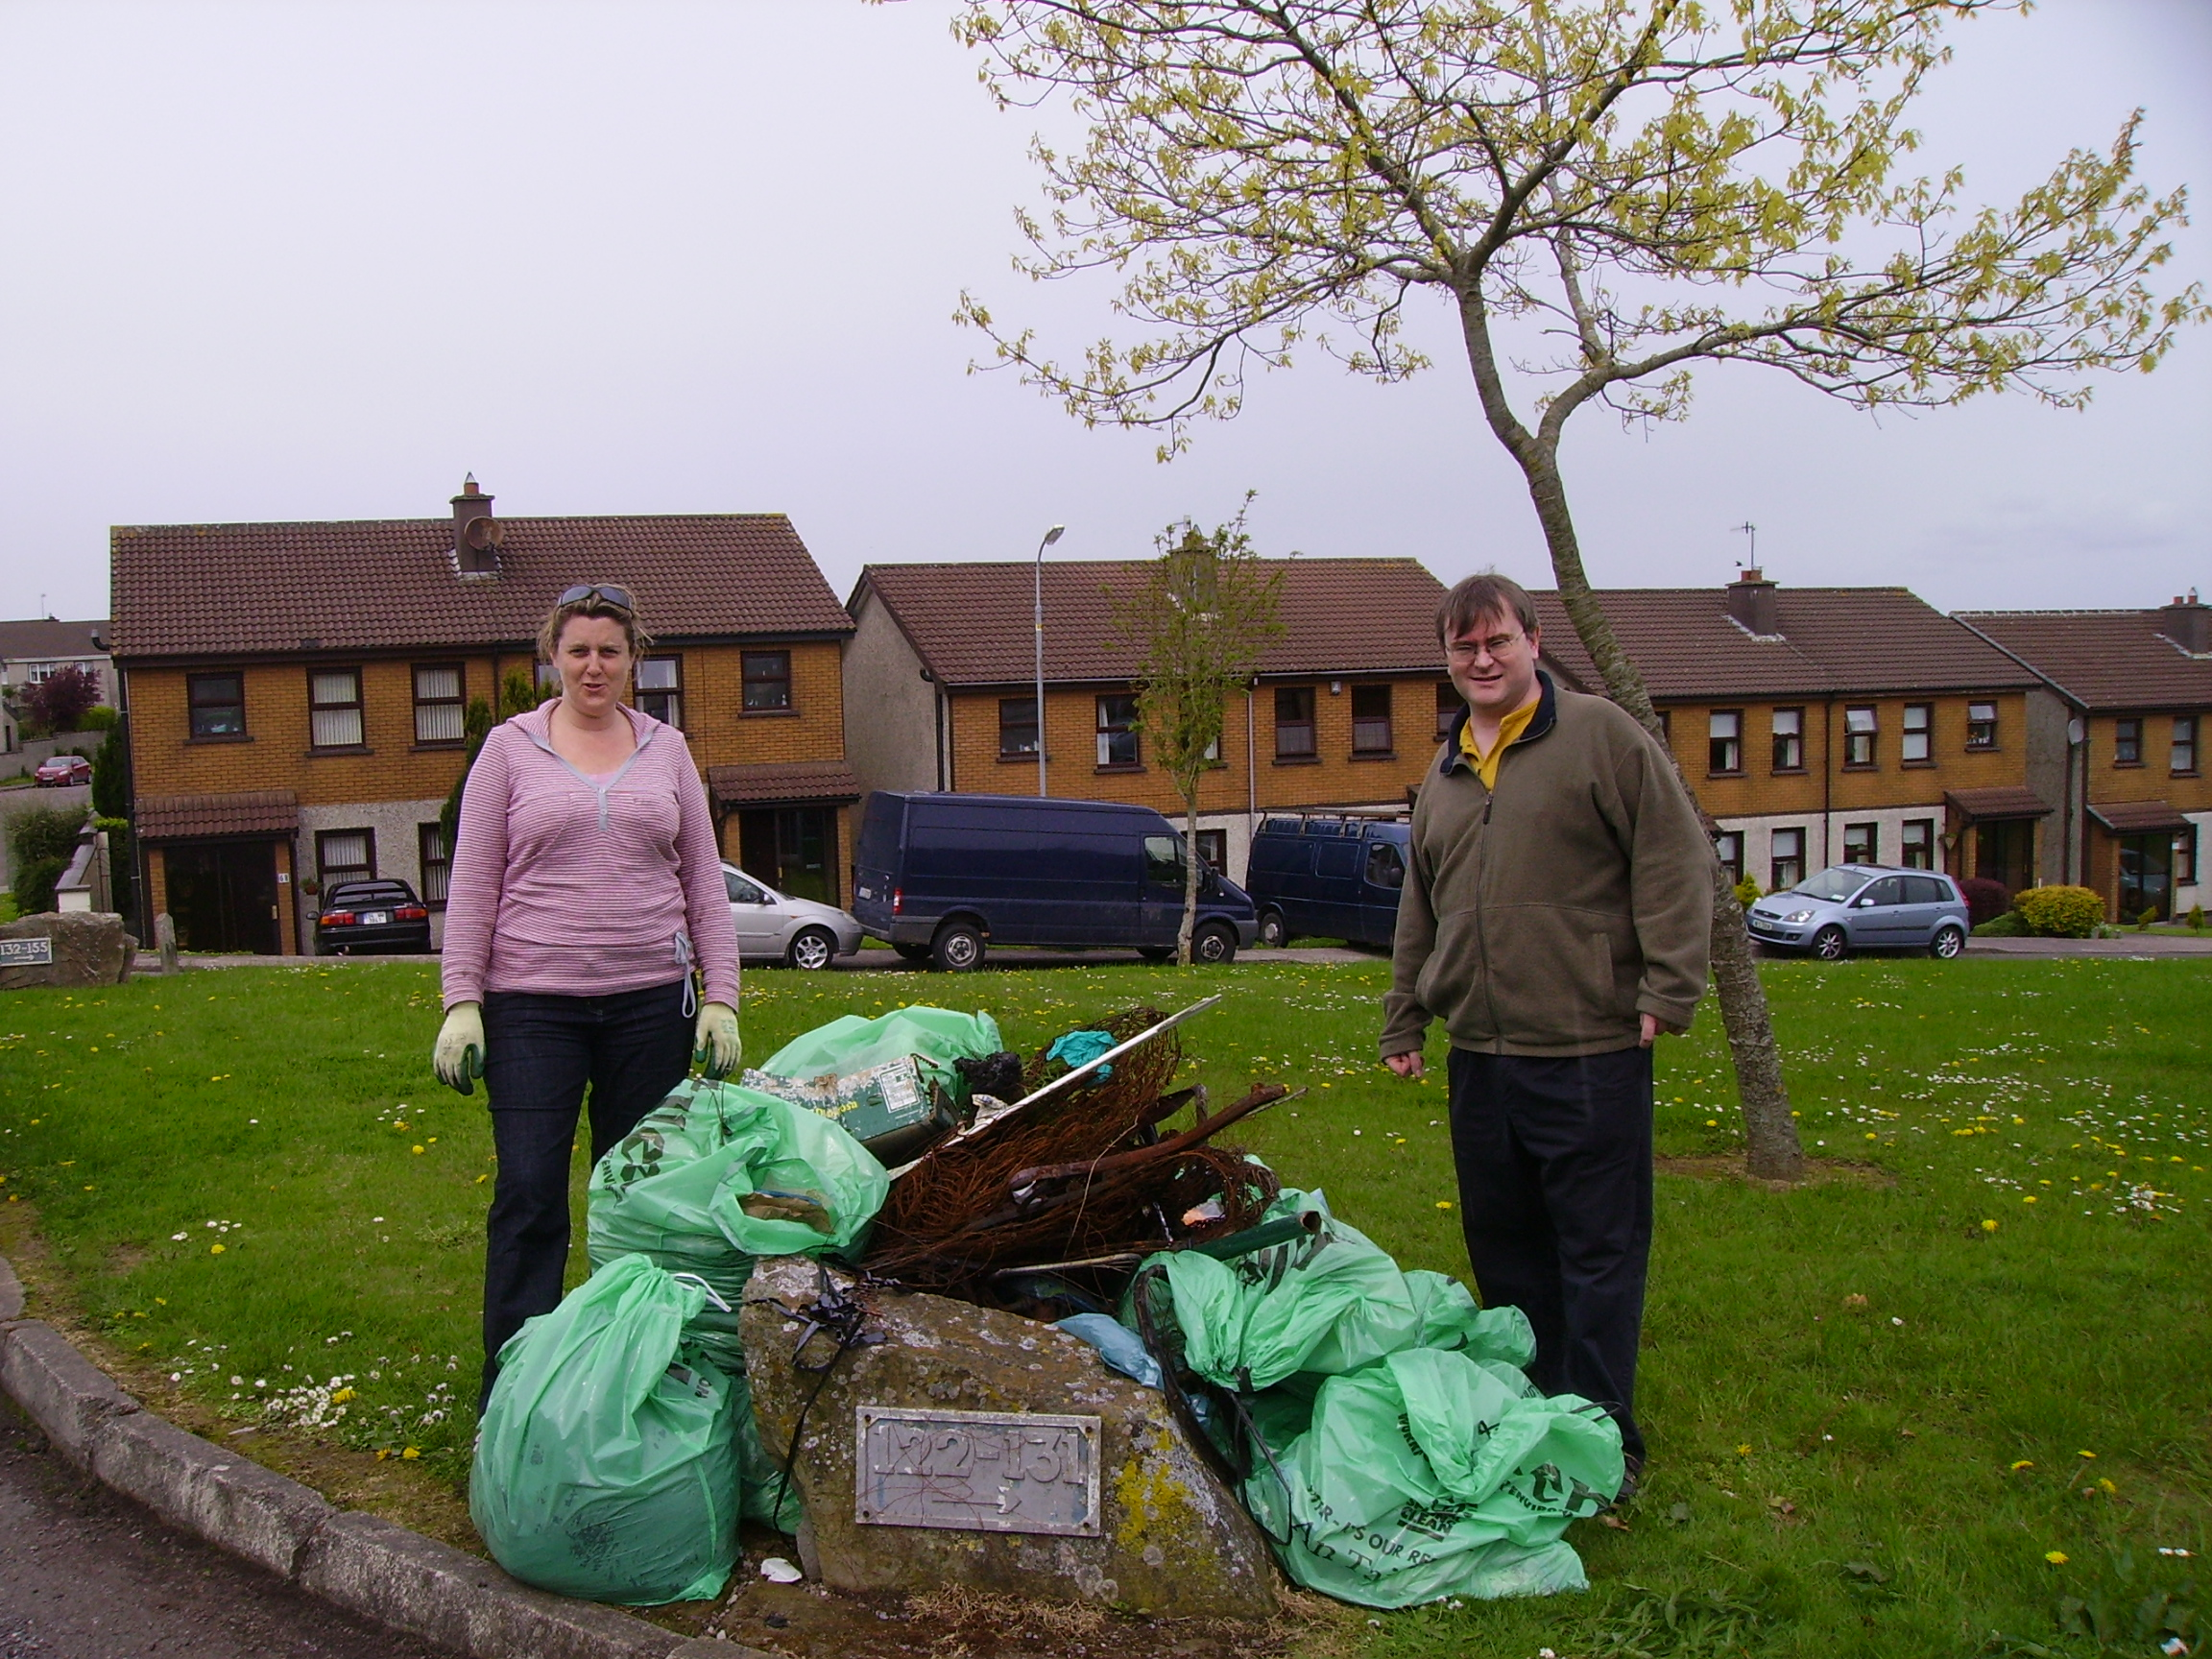 Cllr. Dominick Donnelly with Bracken Court resident Helen Maher, and the pile of rubbish collected by the residents